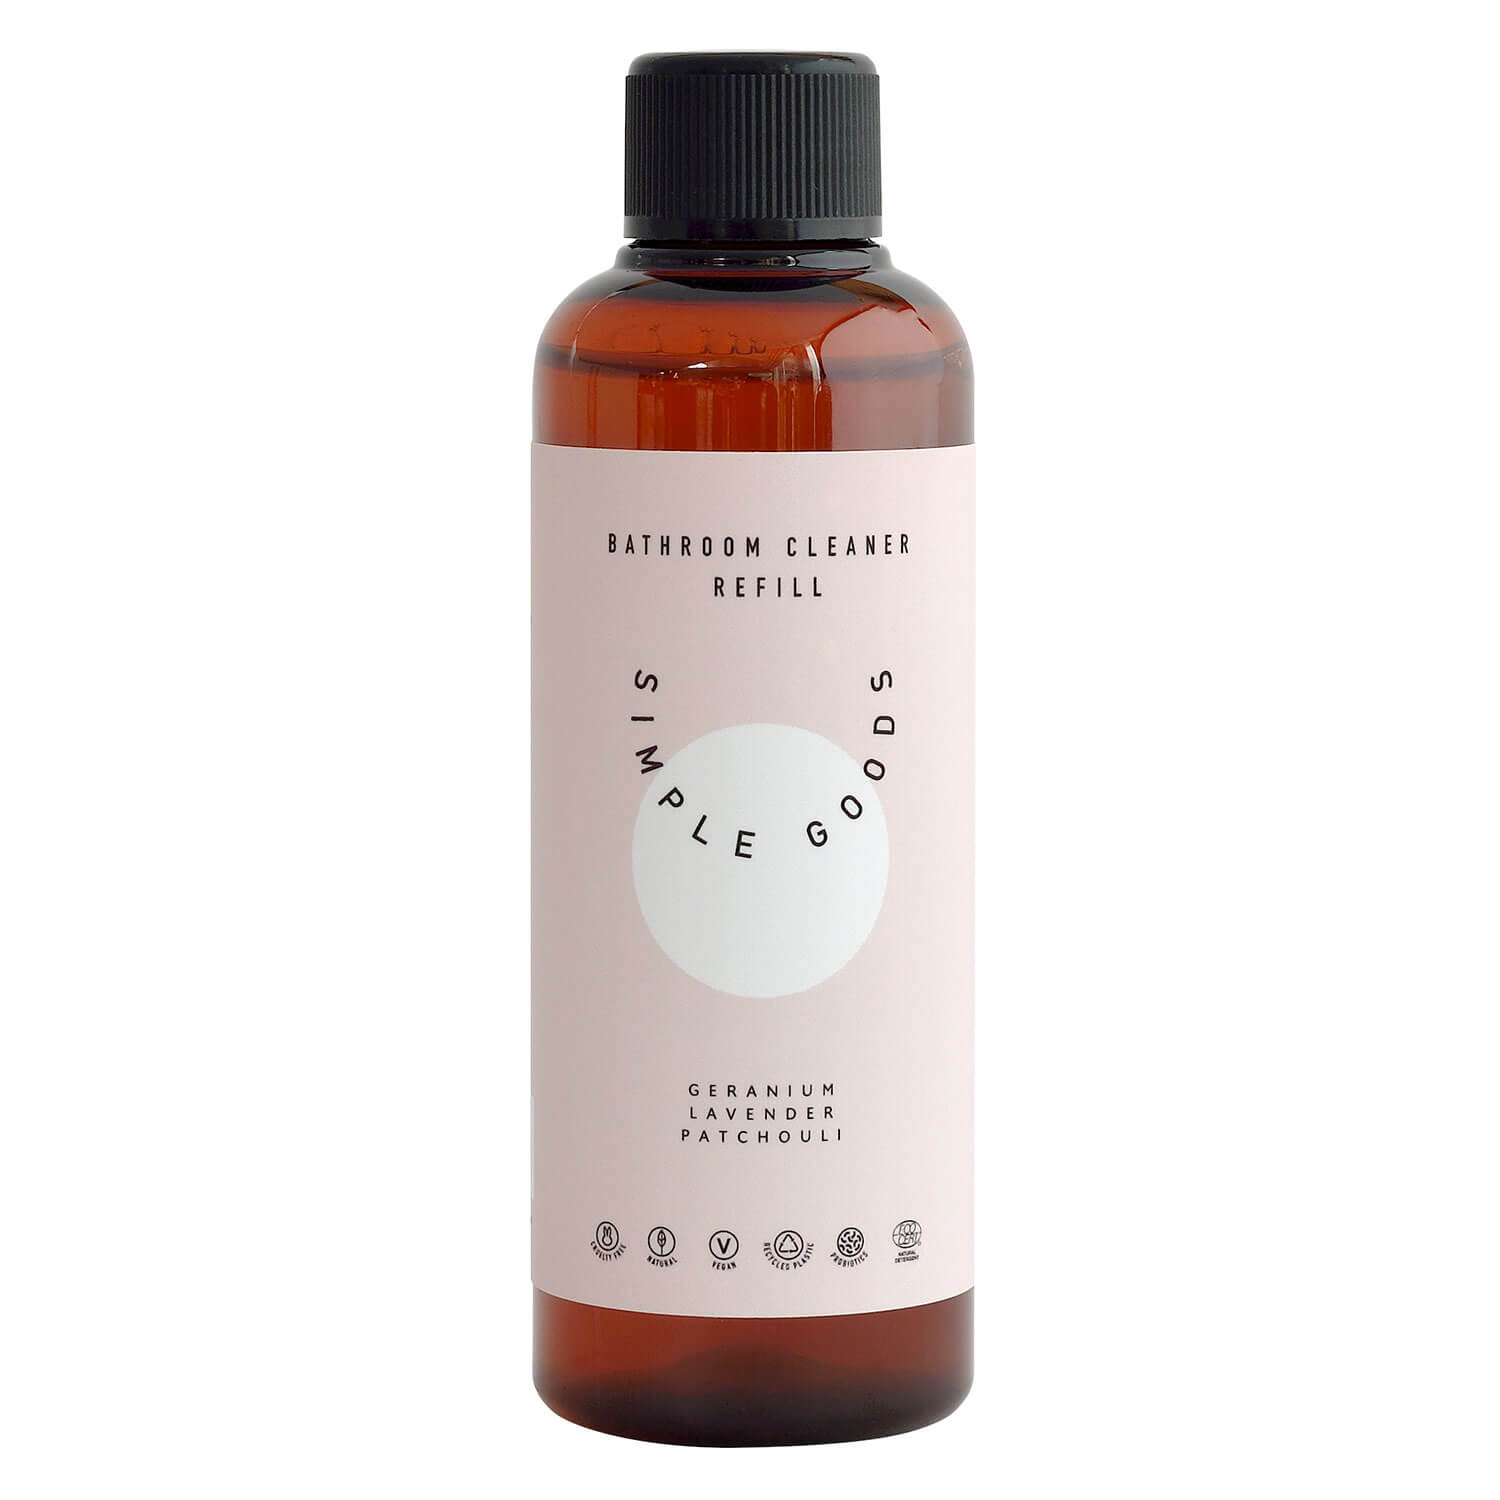 SIMPLE GOODS - Refill Bath Cleaner Geranium, Lavender, Patchouli